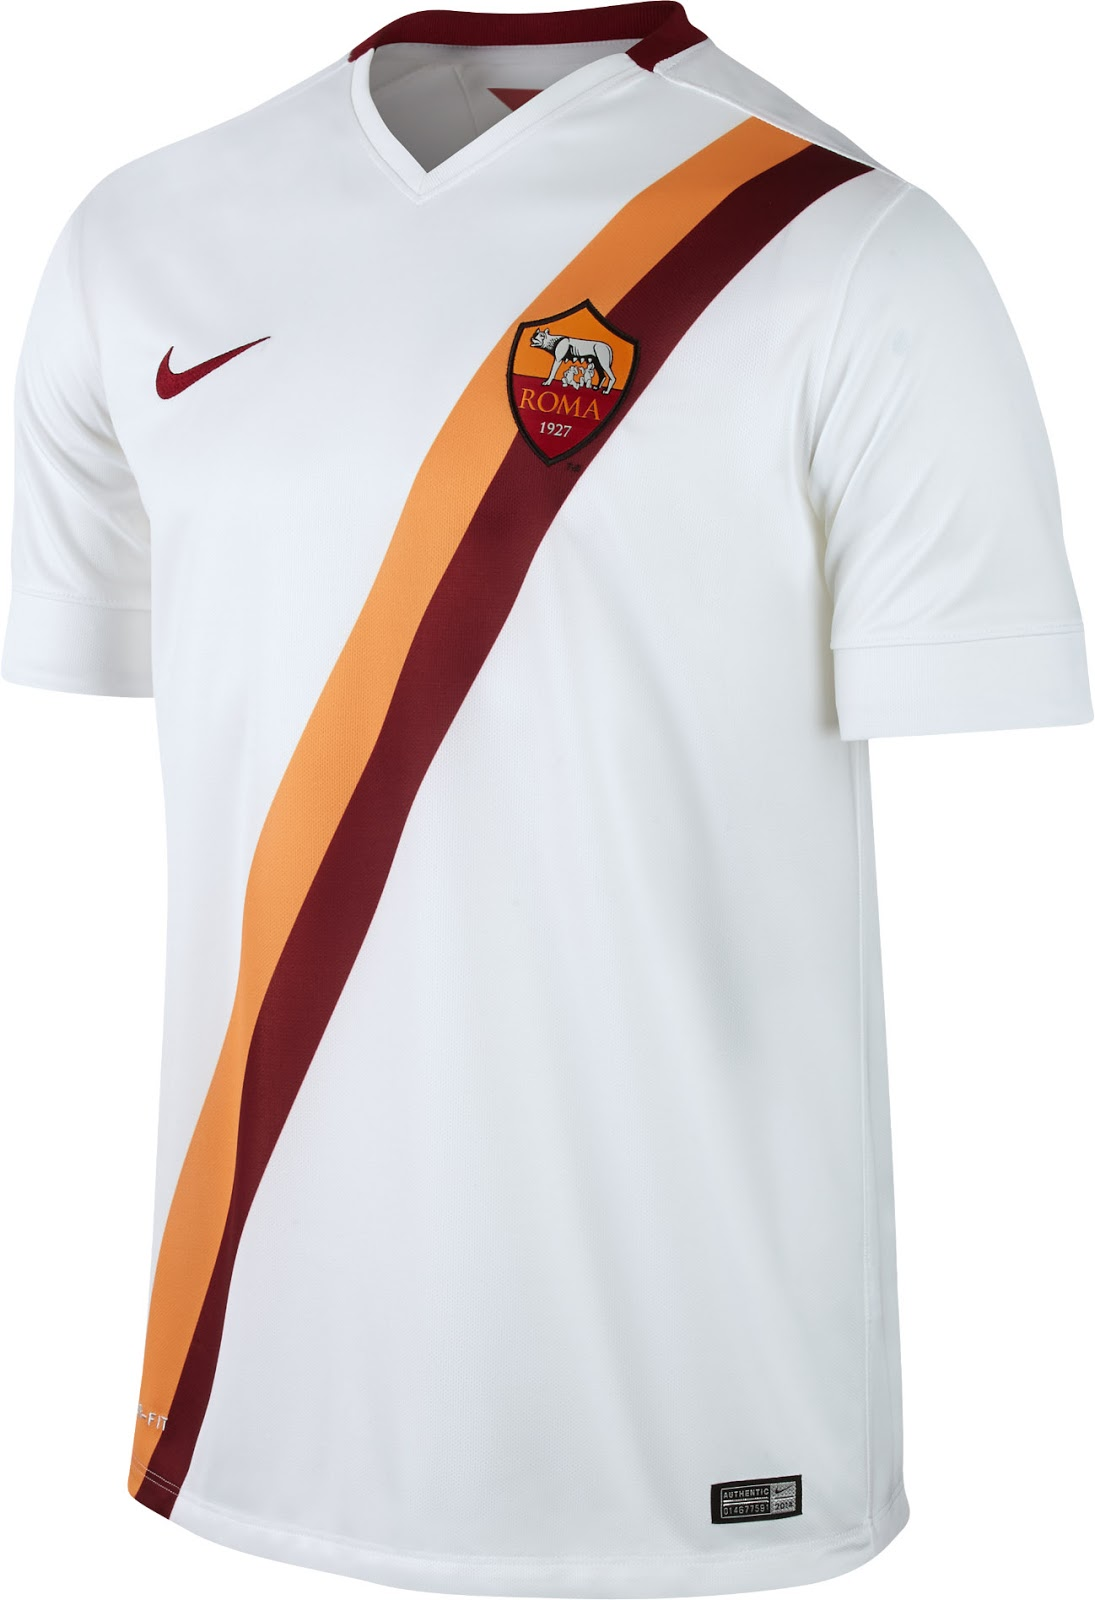 http://3.bp.blogspot.com/-_MULhWVMJS8/U84mJ53zoeI/AAAAAAAAUwA/OVyeKqsNSDs/s1600/AS-Roma-14-15-Away-Kit+(1).jpg